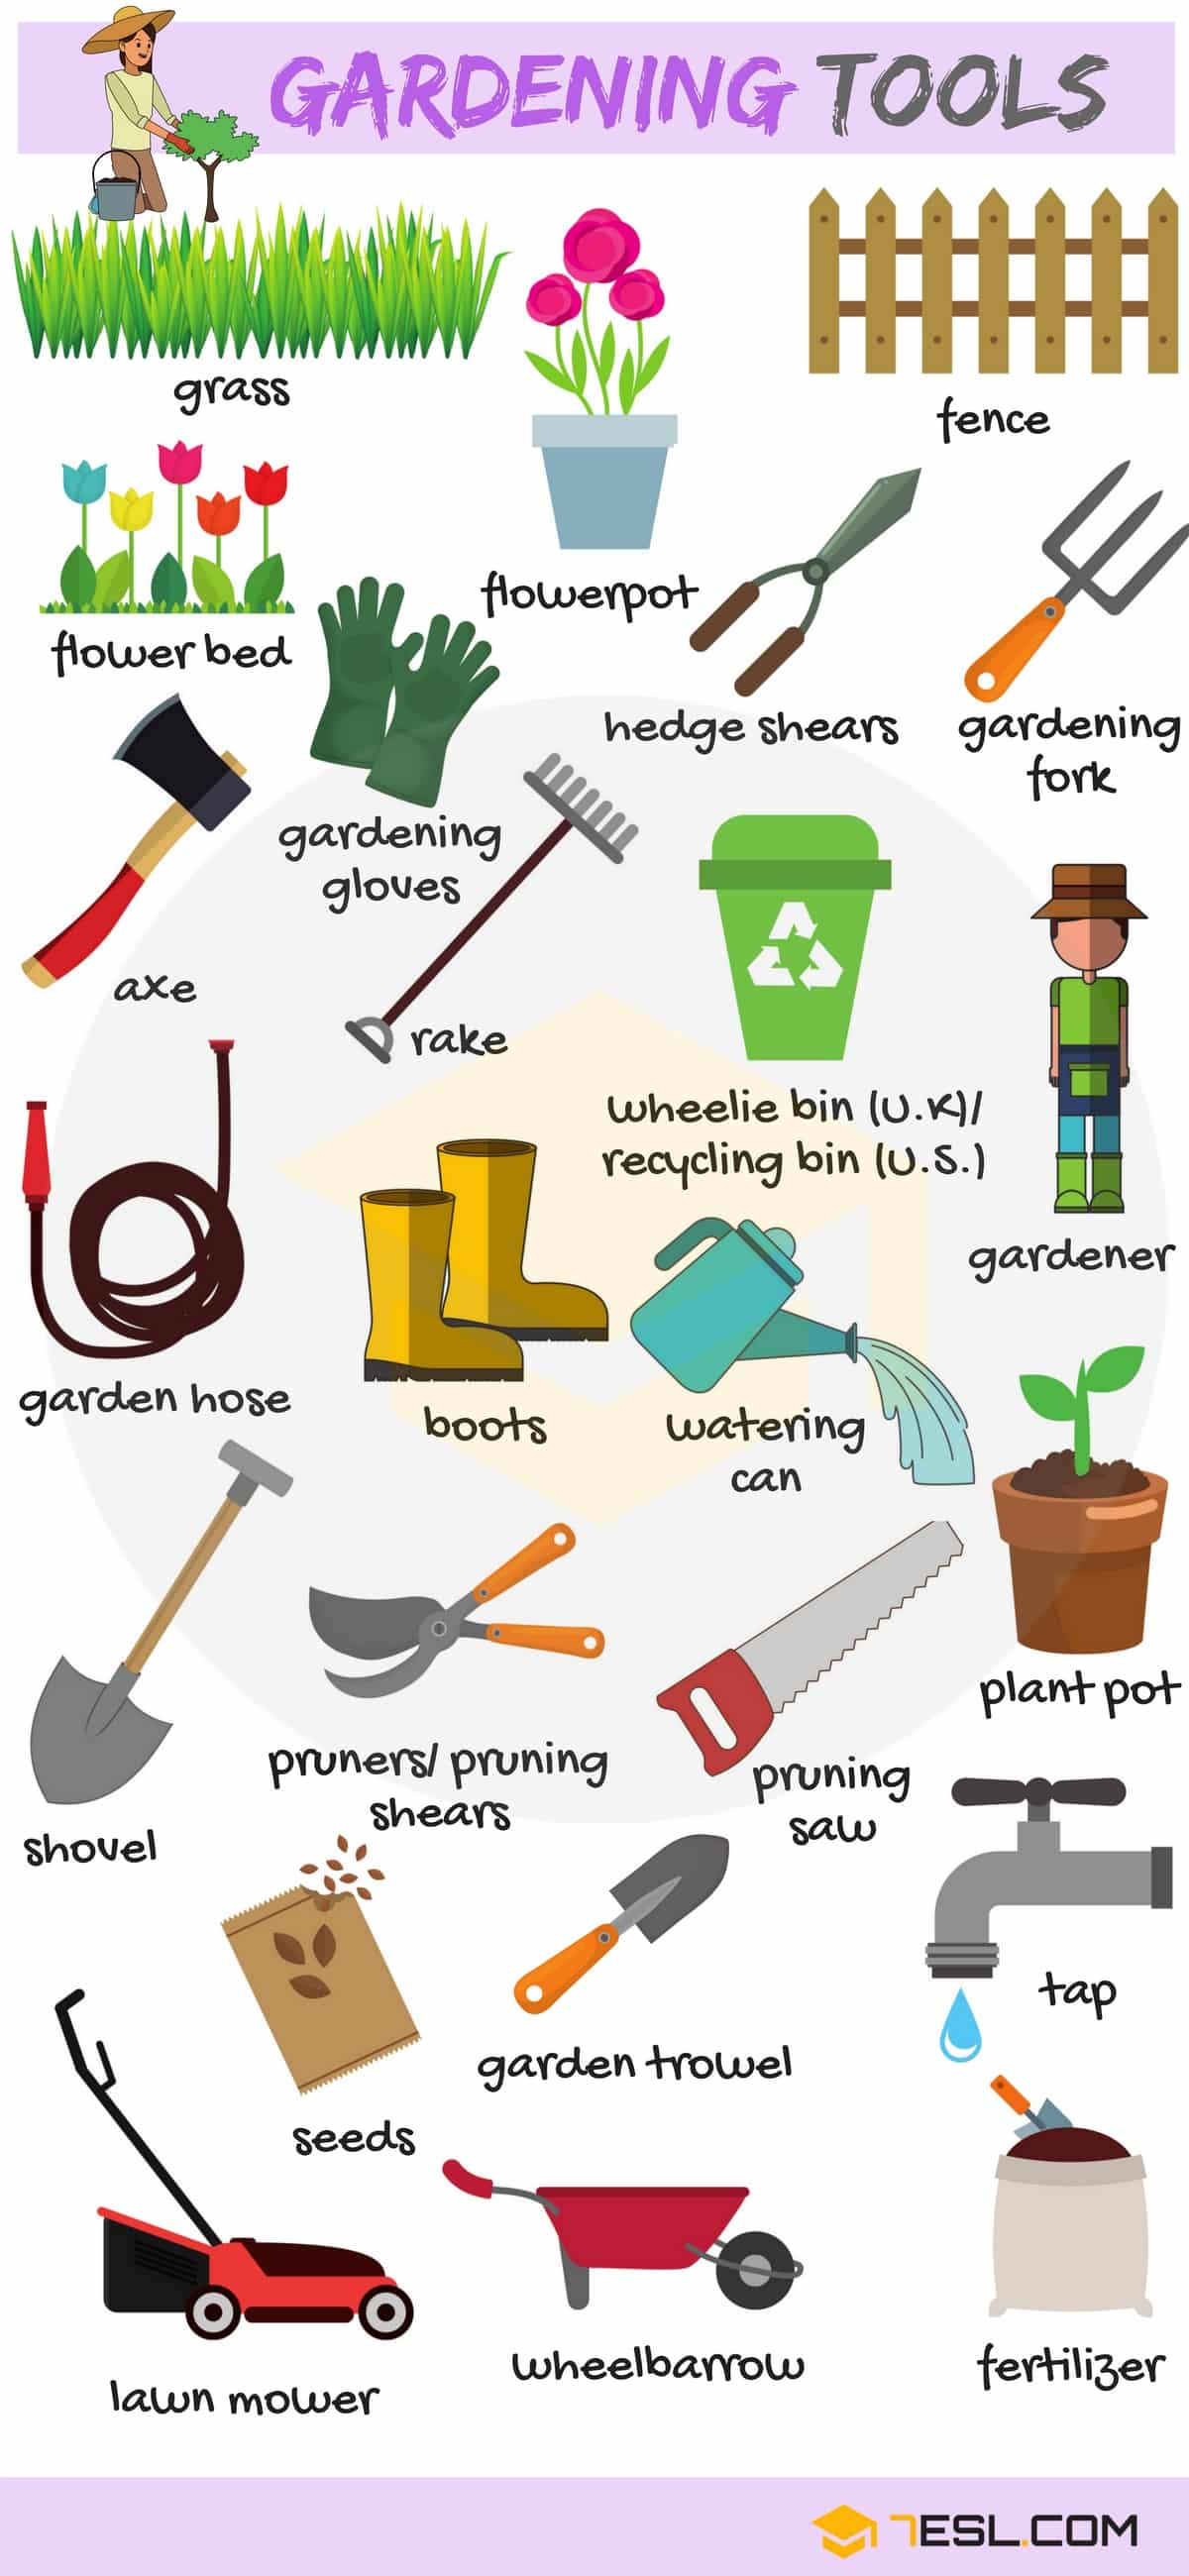 Gardening tools vocabulary in english in the garden for Gardening tools list with pictures